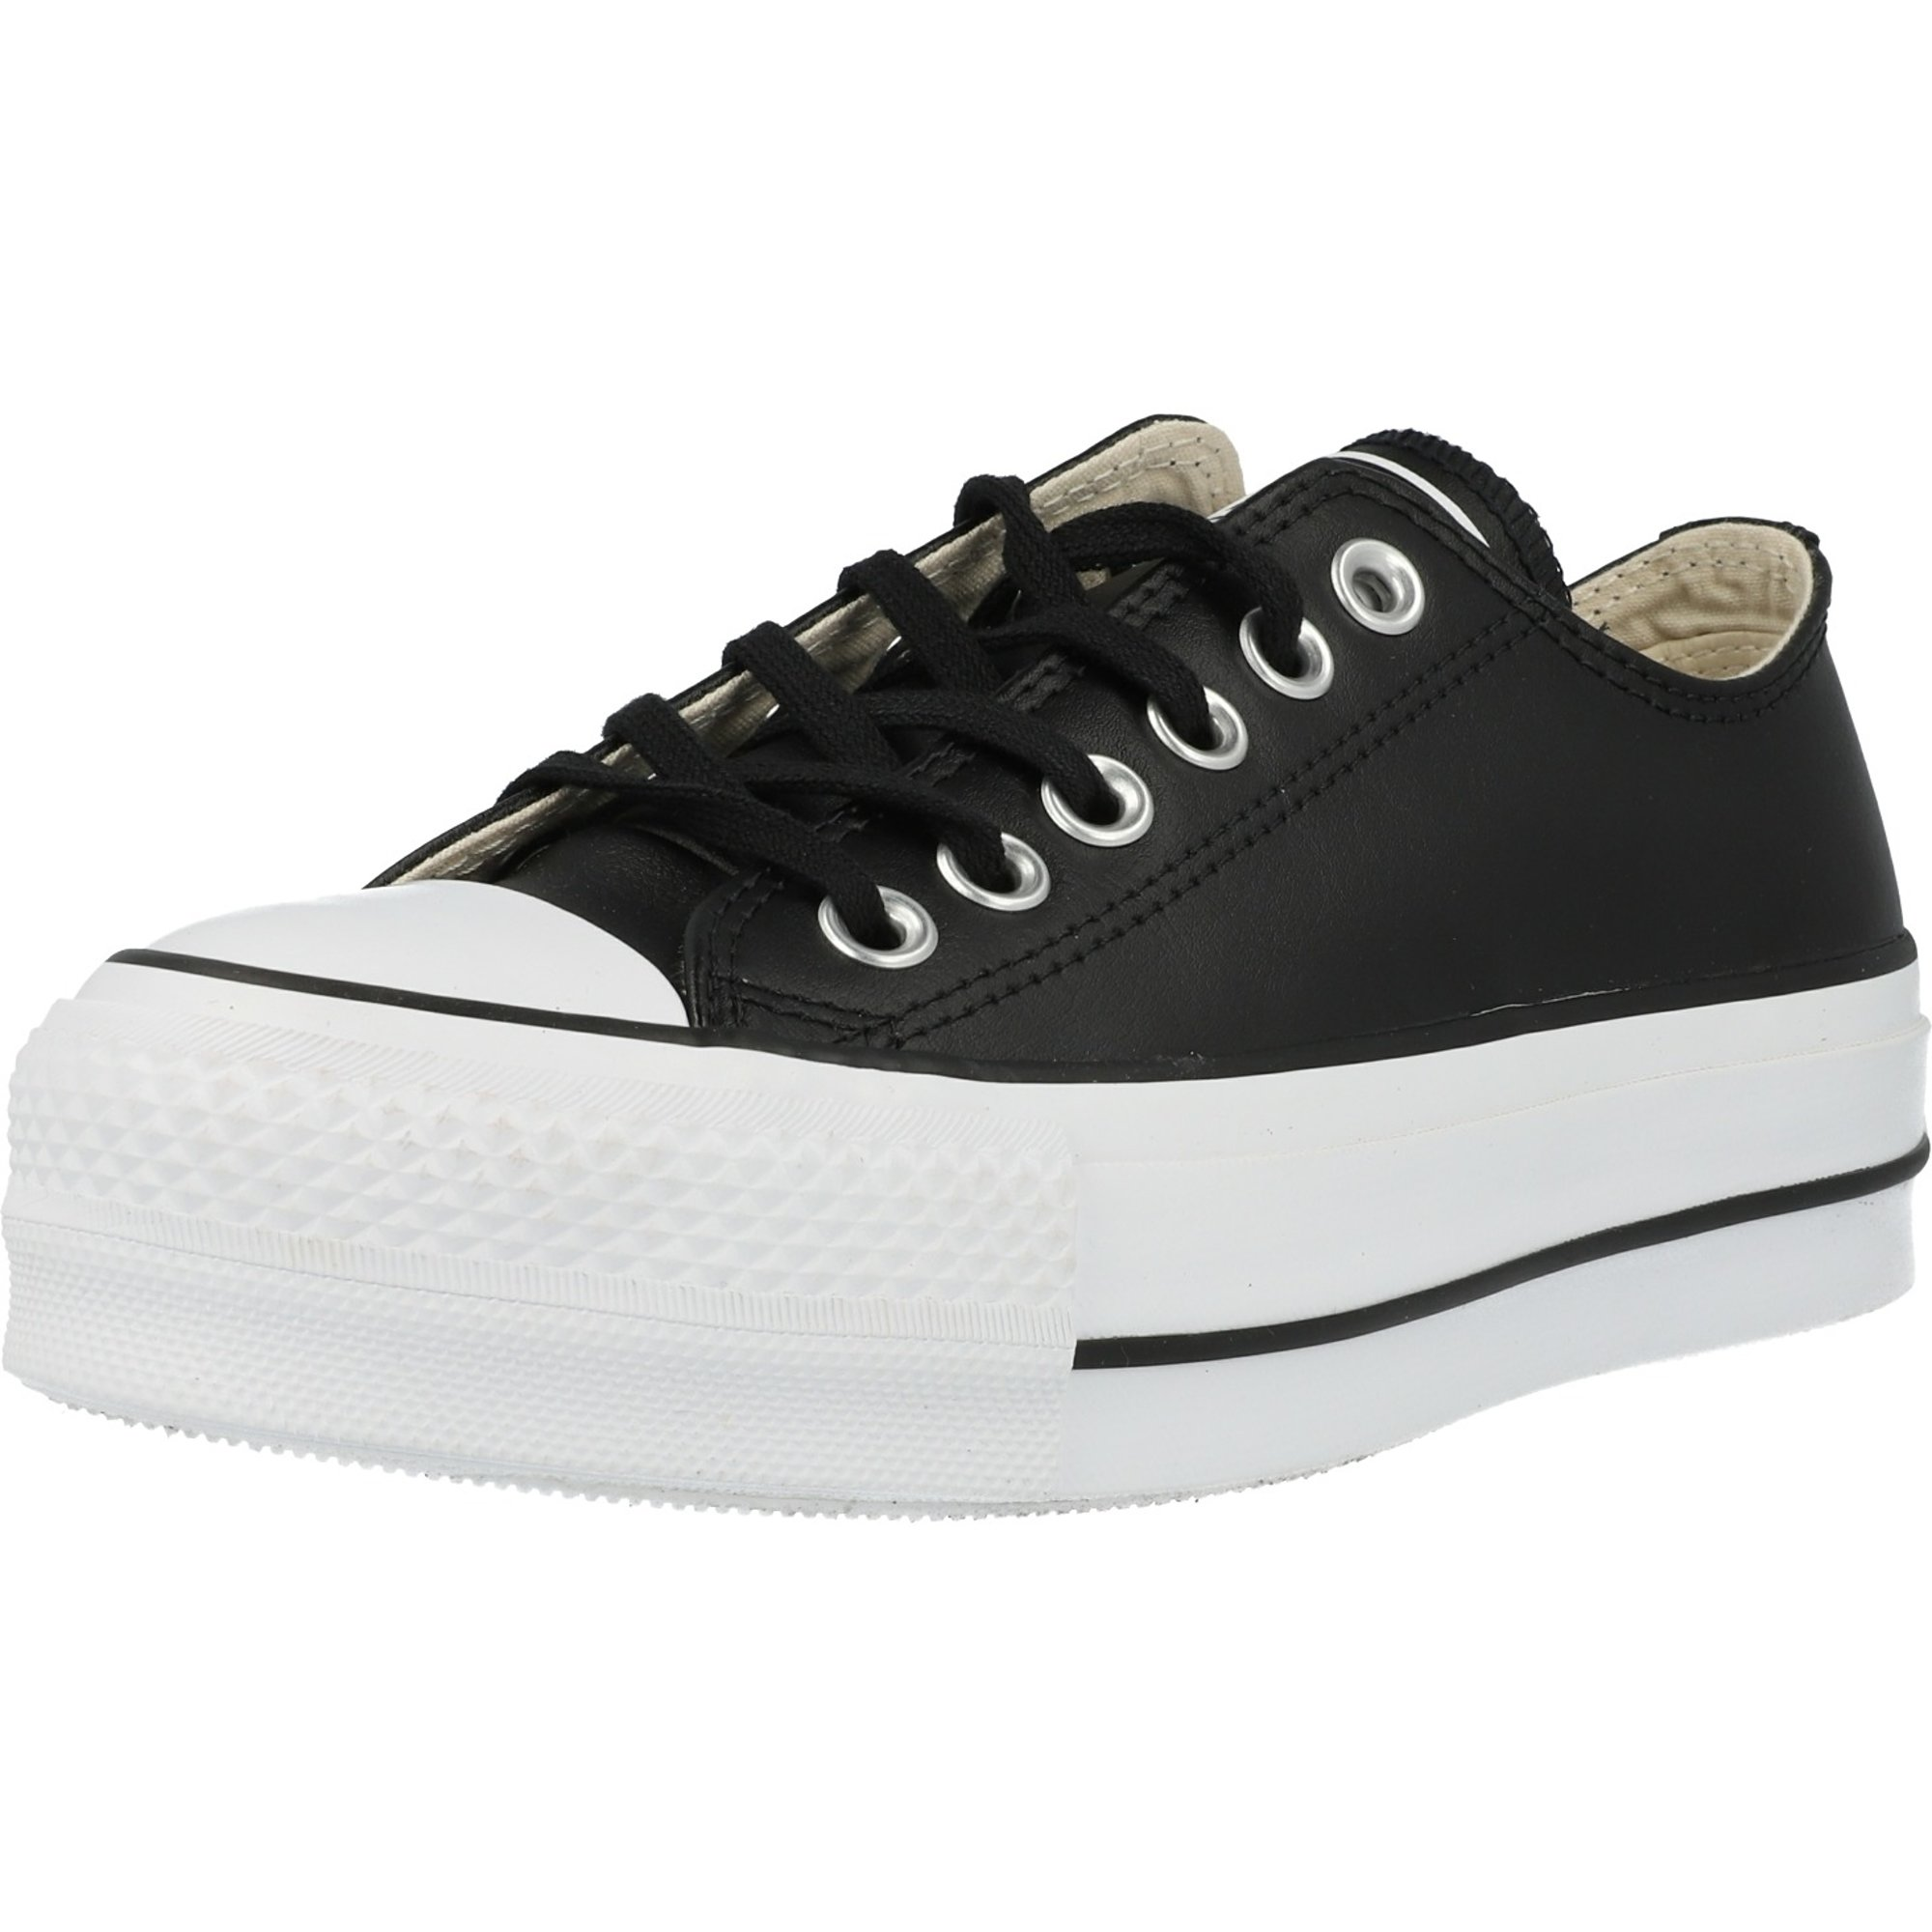 converse chuck taylor all star clean lift mujer negro ox zapatillas